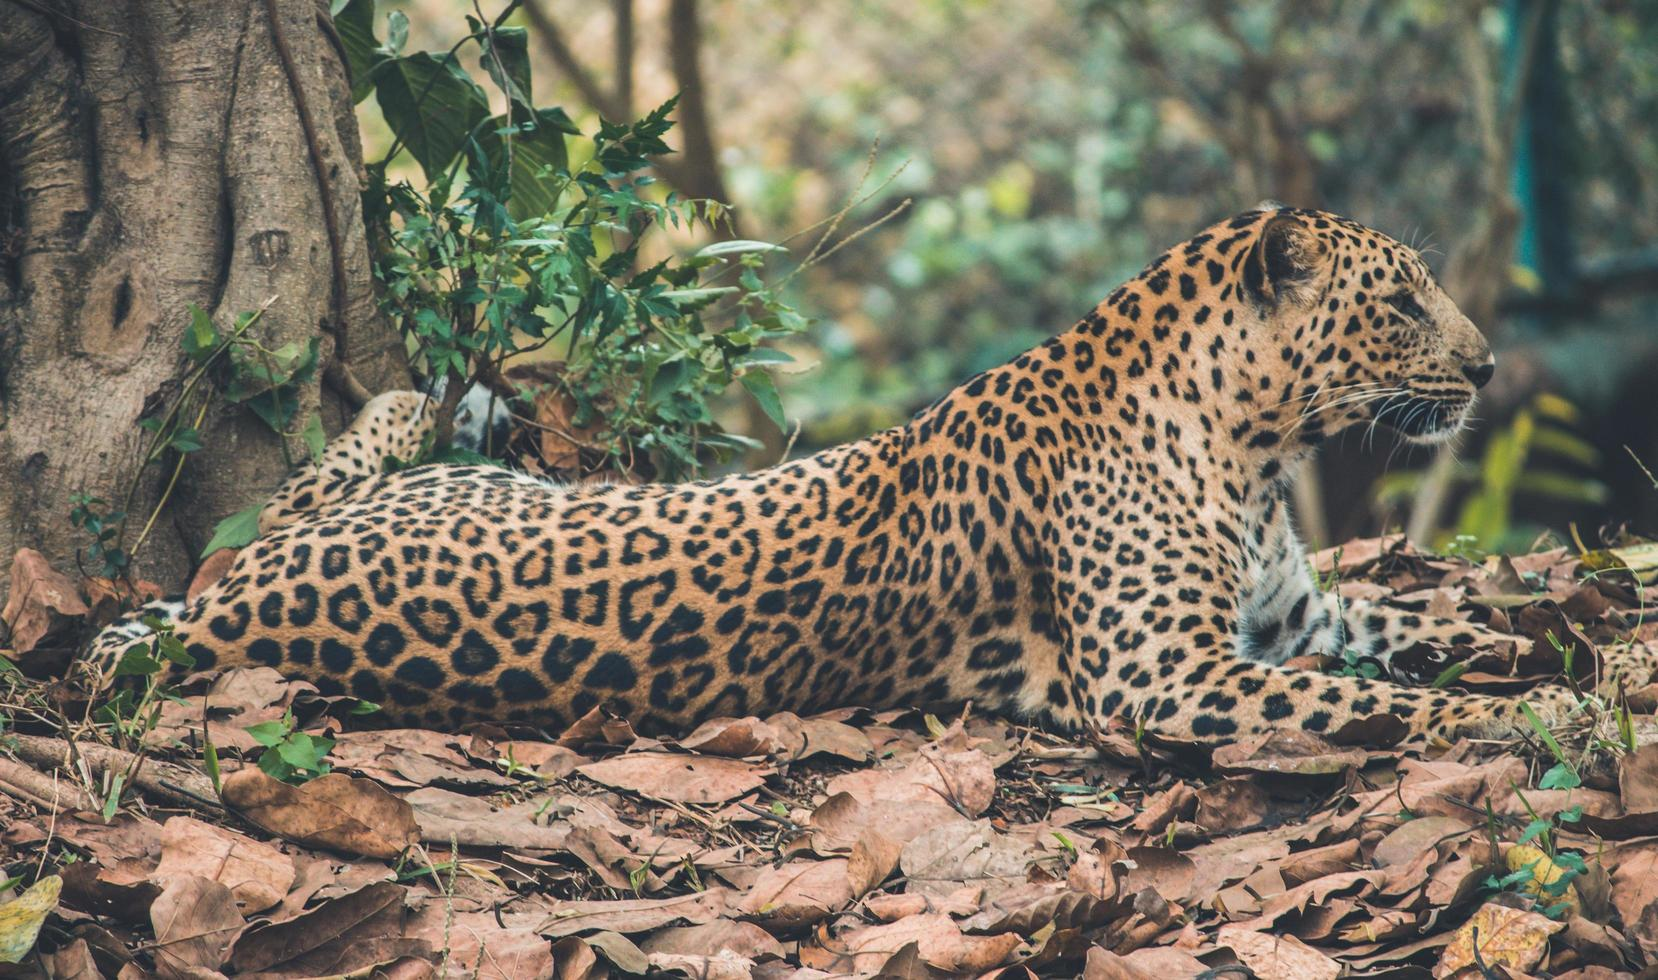 Leopard resting in forest photo